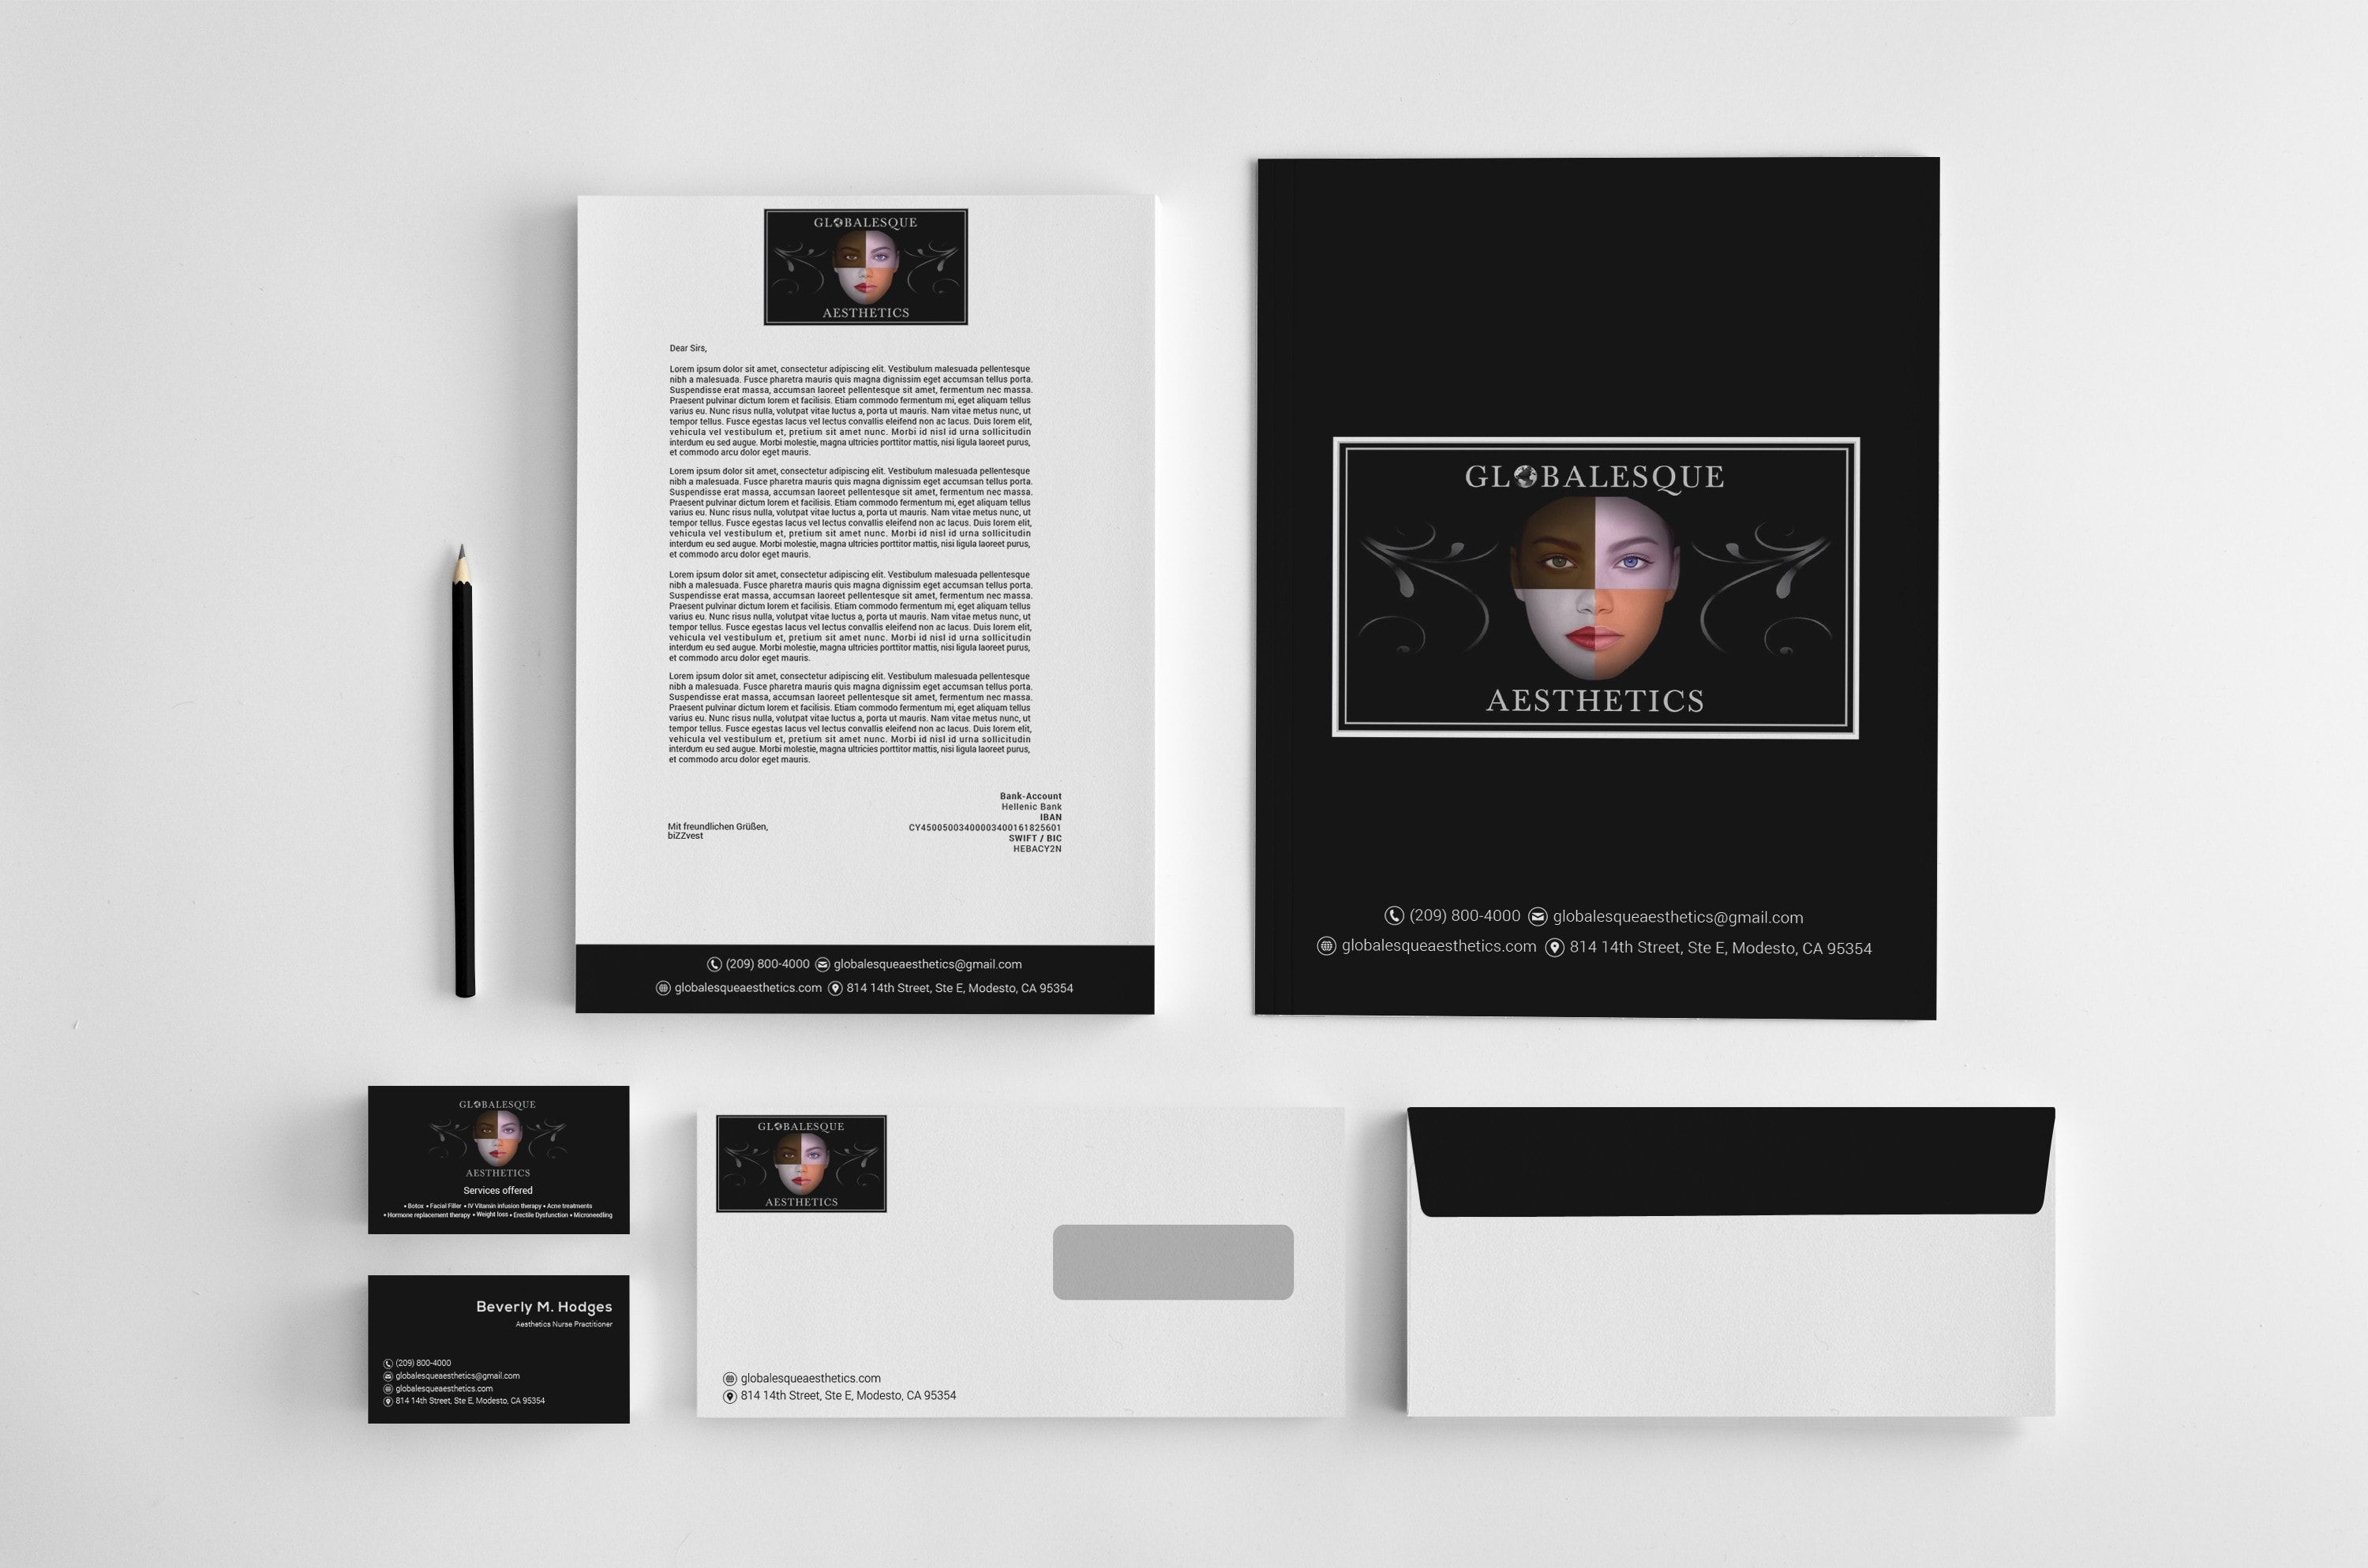 I Will Design Awesome Branding Stationery For Your Business In 2020 Business Cards Online Cheap Business Cards Moo Business Cards